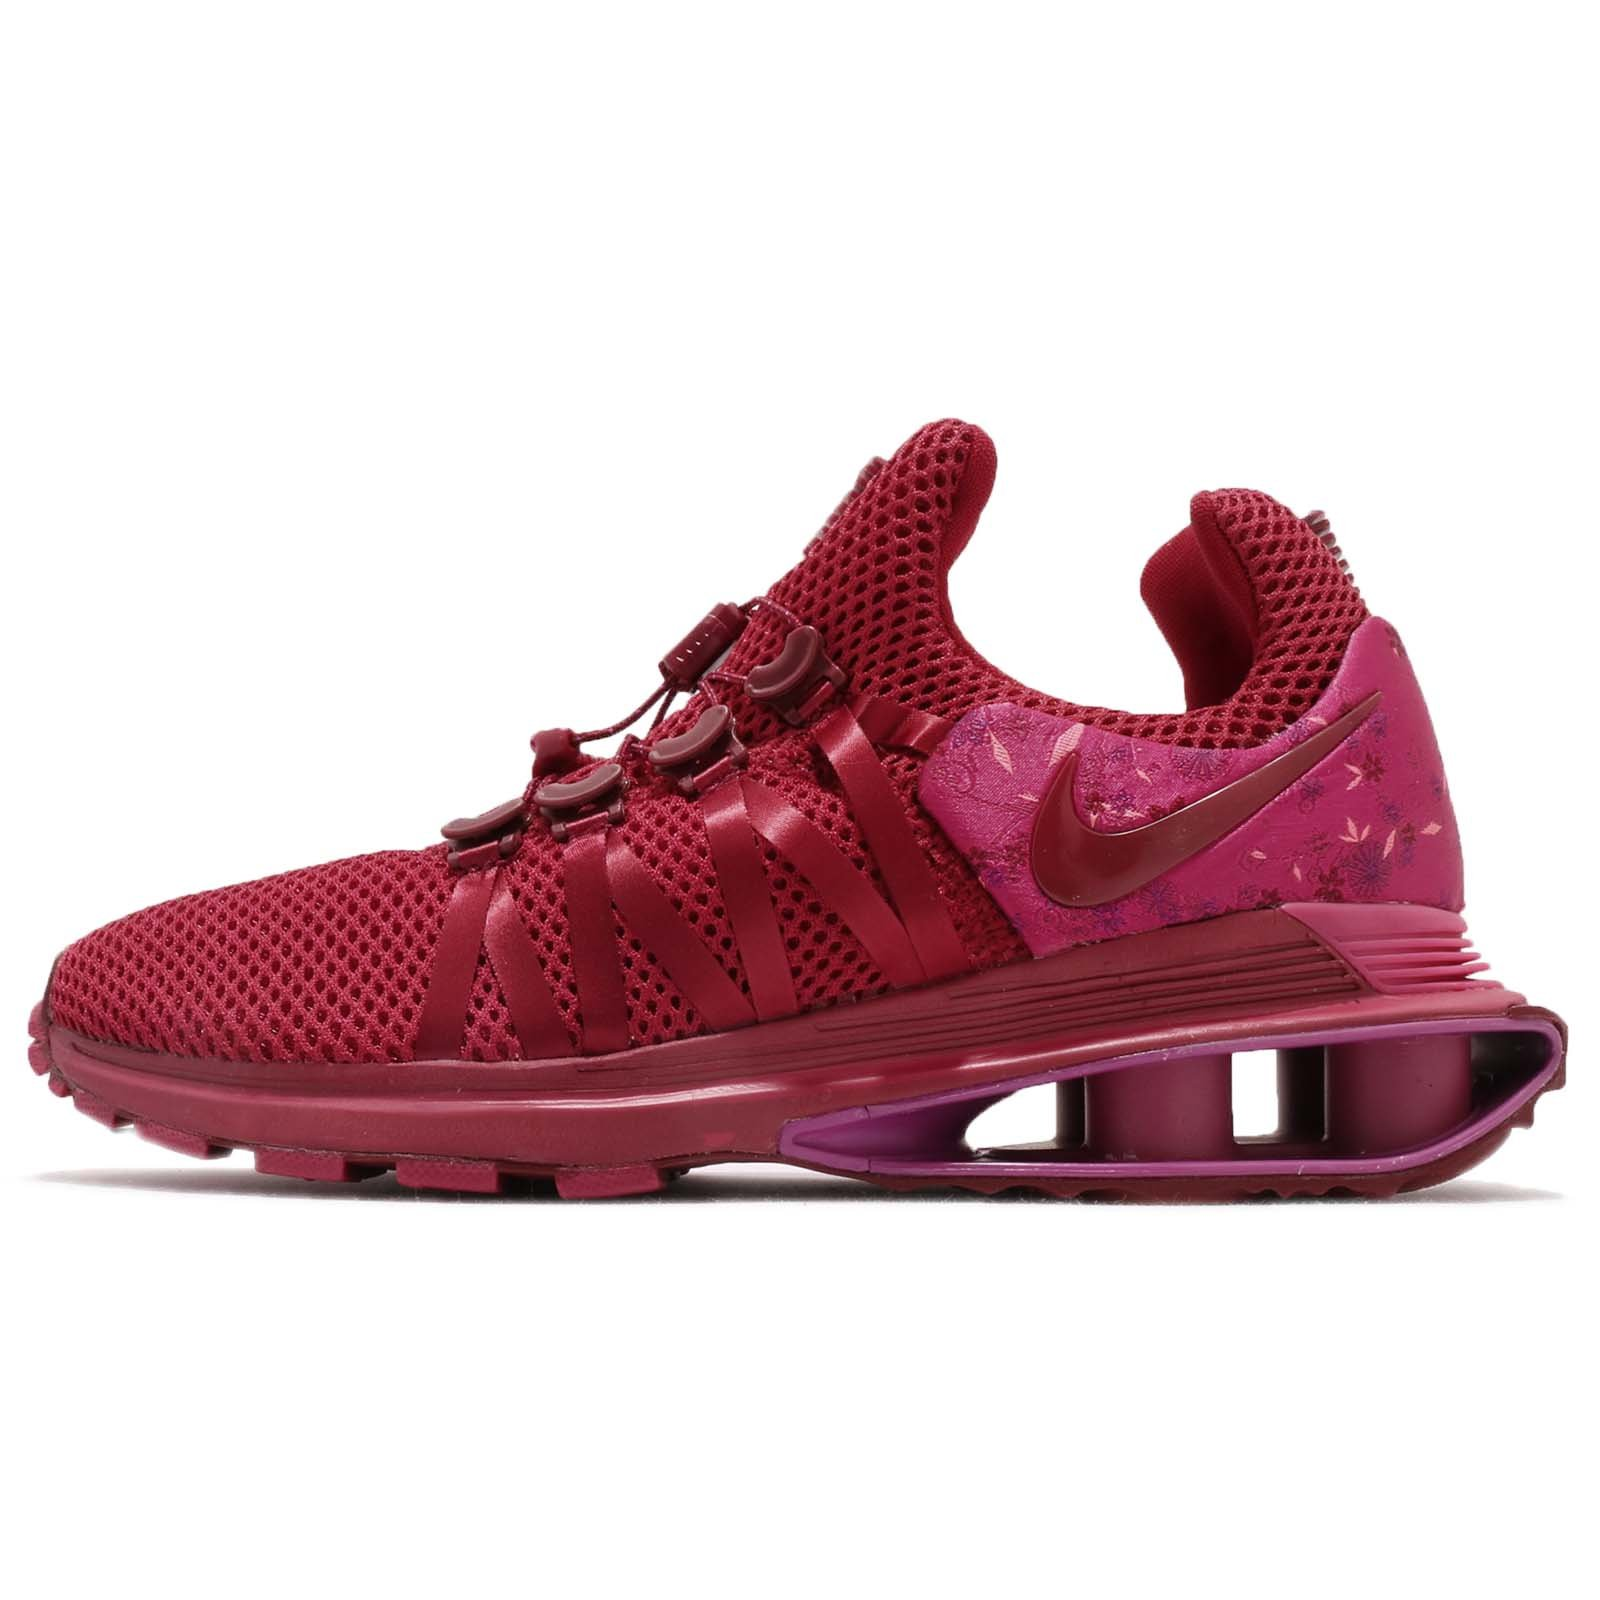 huge discount 0f679 d70c9 Galleon - NIKE Women s Shox Gravity Shoes (8.5, Red Pink)